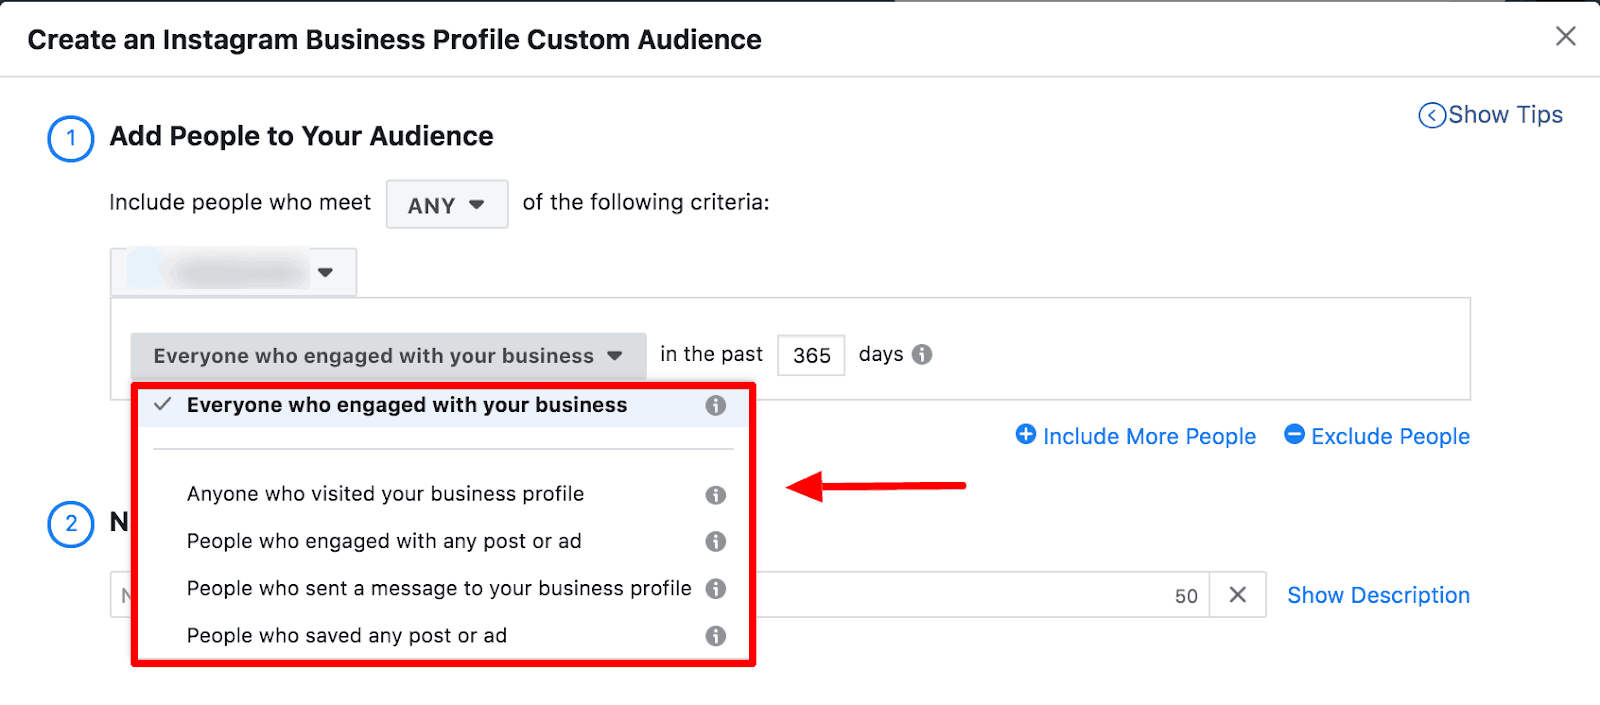 Screenshot showing how to create an Instagram Business Profile custom audience.